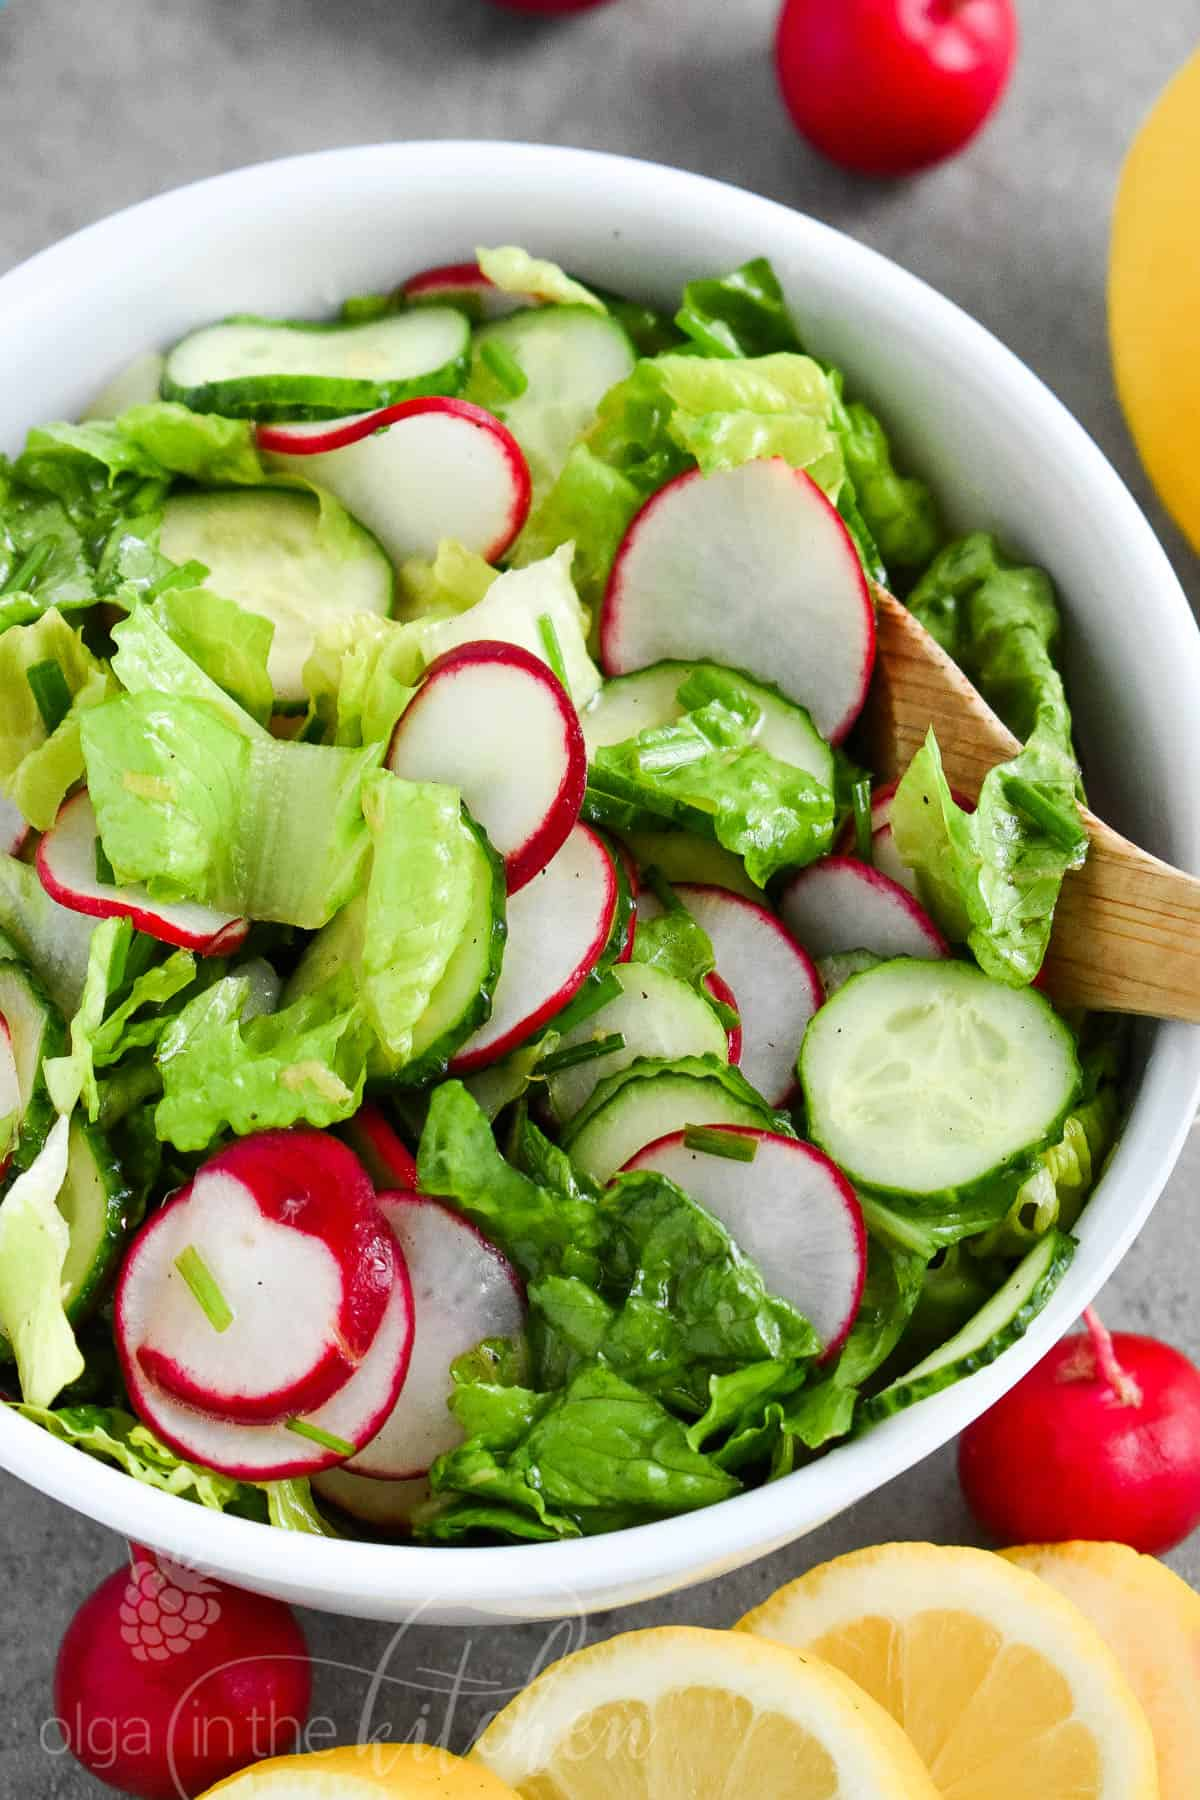 Easy Lettuce Radish Salad with Lemon Vinaigrette is as simple as it gets! It has a crisp and crunchy texture and is lemony good. It's so fresh, versatile, quick and easy to make and can make a wonderful meal, combined with an entree of your choice. #healthy #olgainthekitchen #vinaigrette #saladrecipe #salad #lowcarb #summer